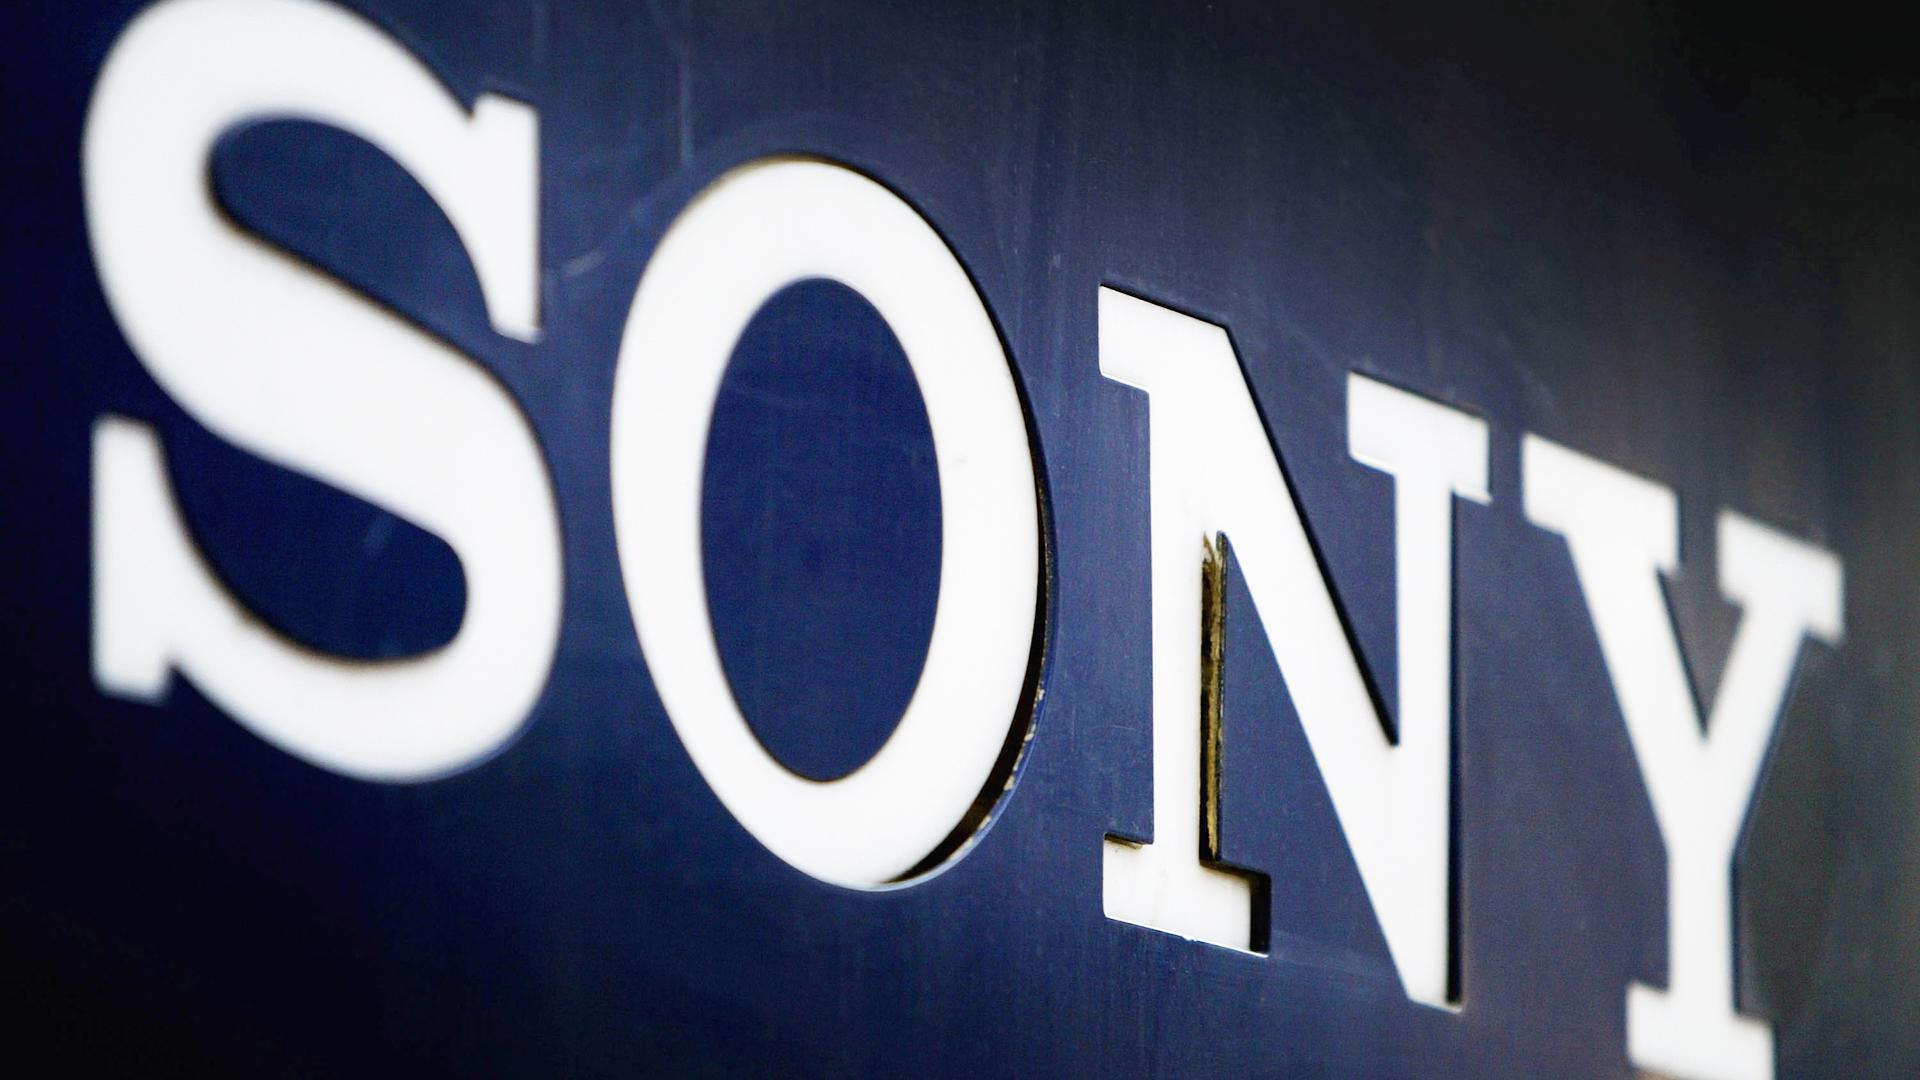 Sony Raises Profit Forecast Again, Say Reports